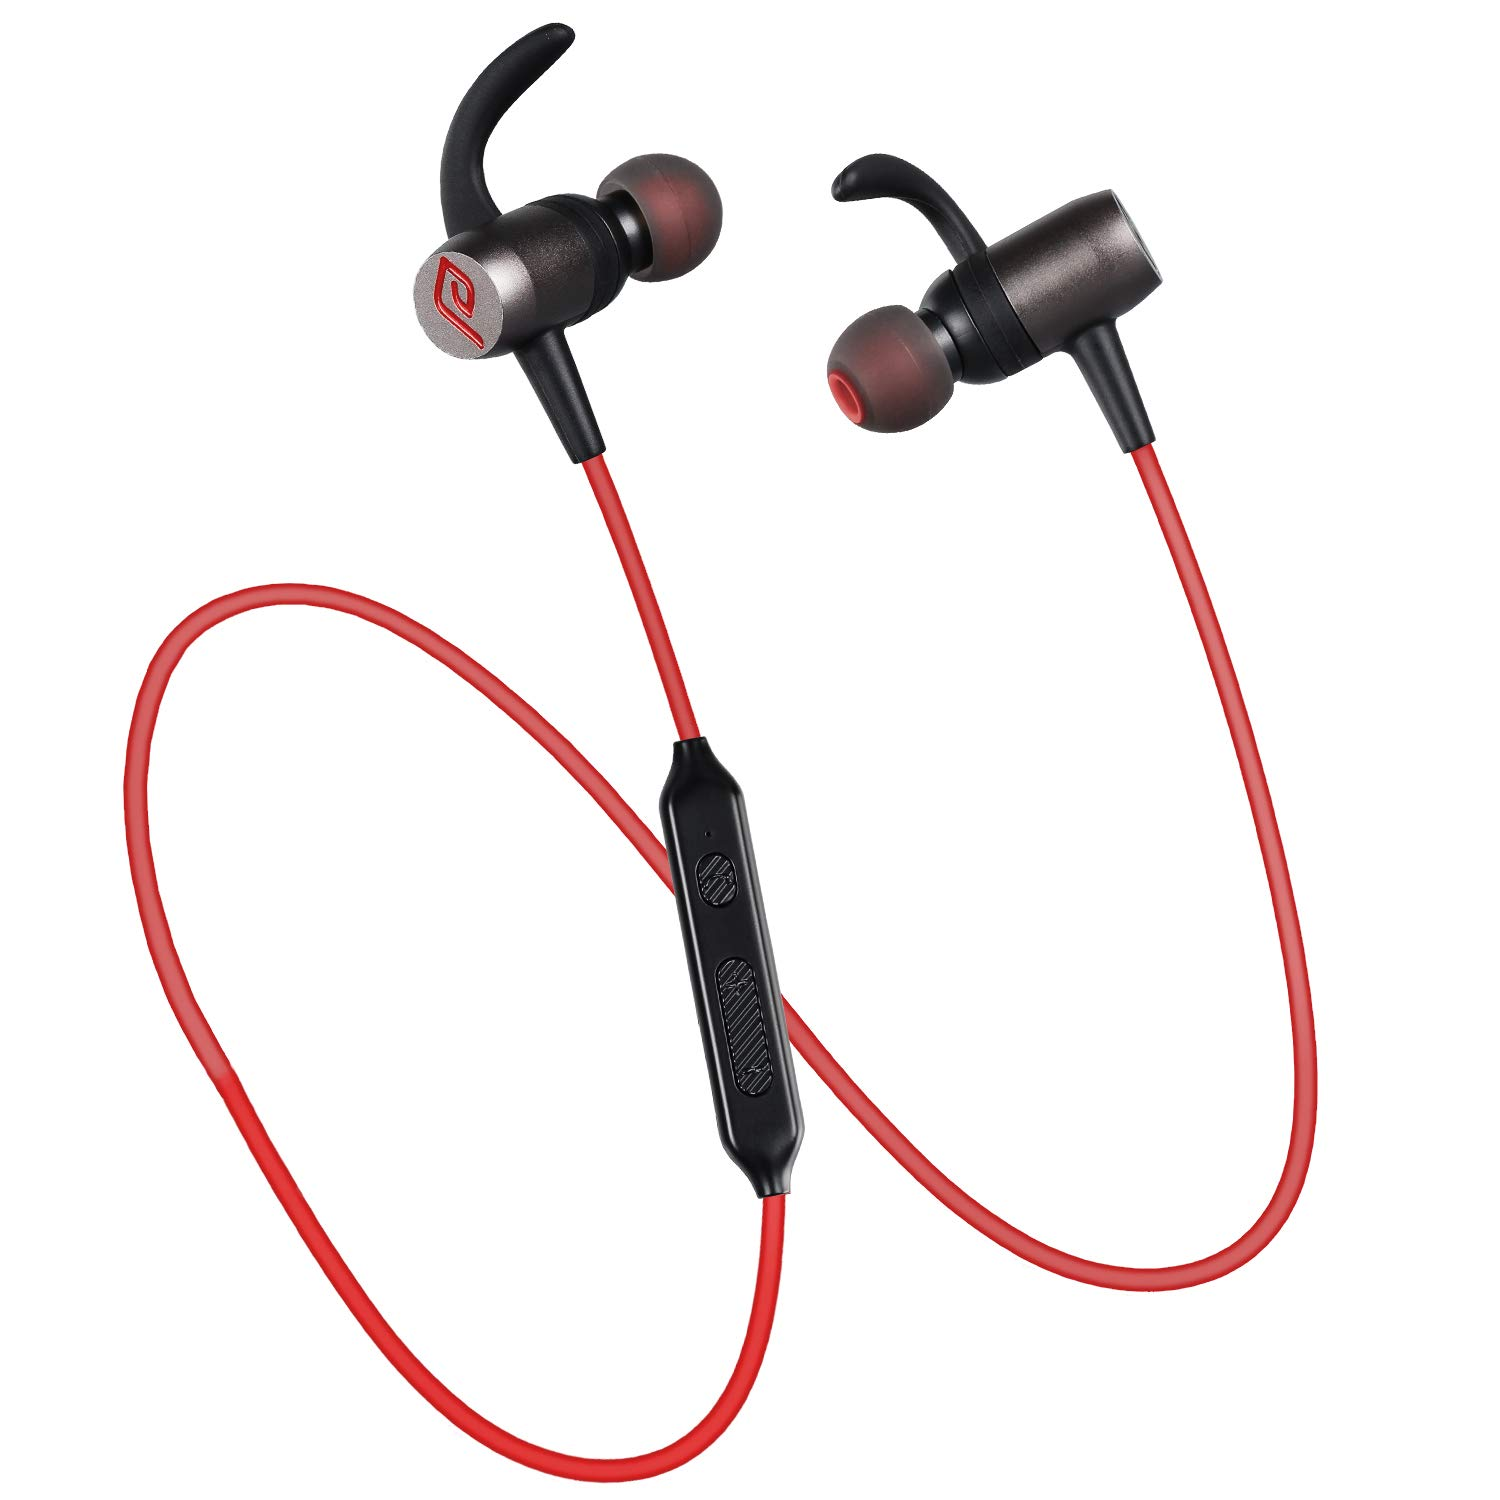 fa01adc5abb Bluetooth Headphones, Parasom A10 Wireless 4.1 Magnetic In-ear Earbuds  Stereo Earphones, Sweatproof Noise-isolation Headphone with built-in Mic  for Sports, ...